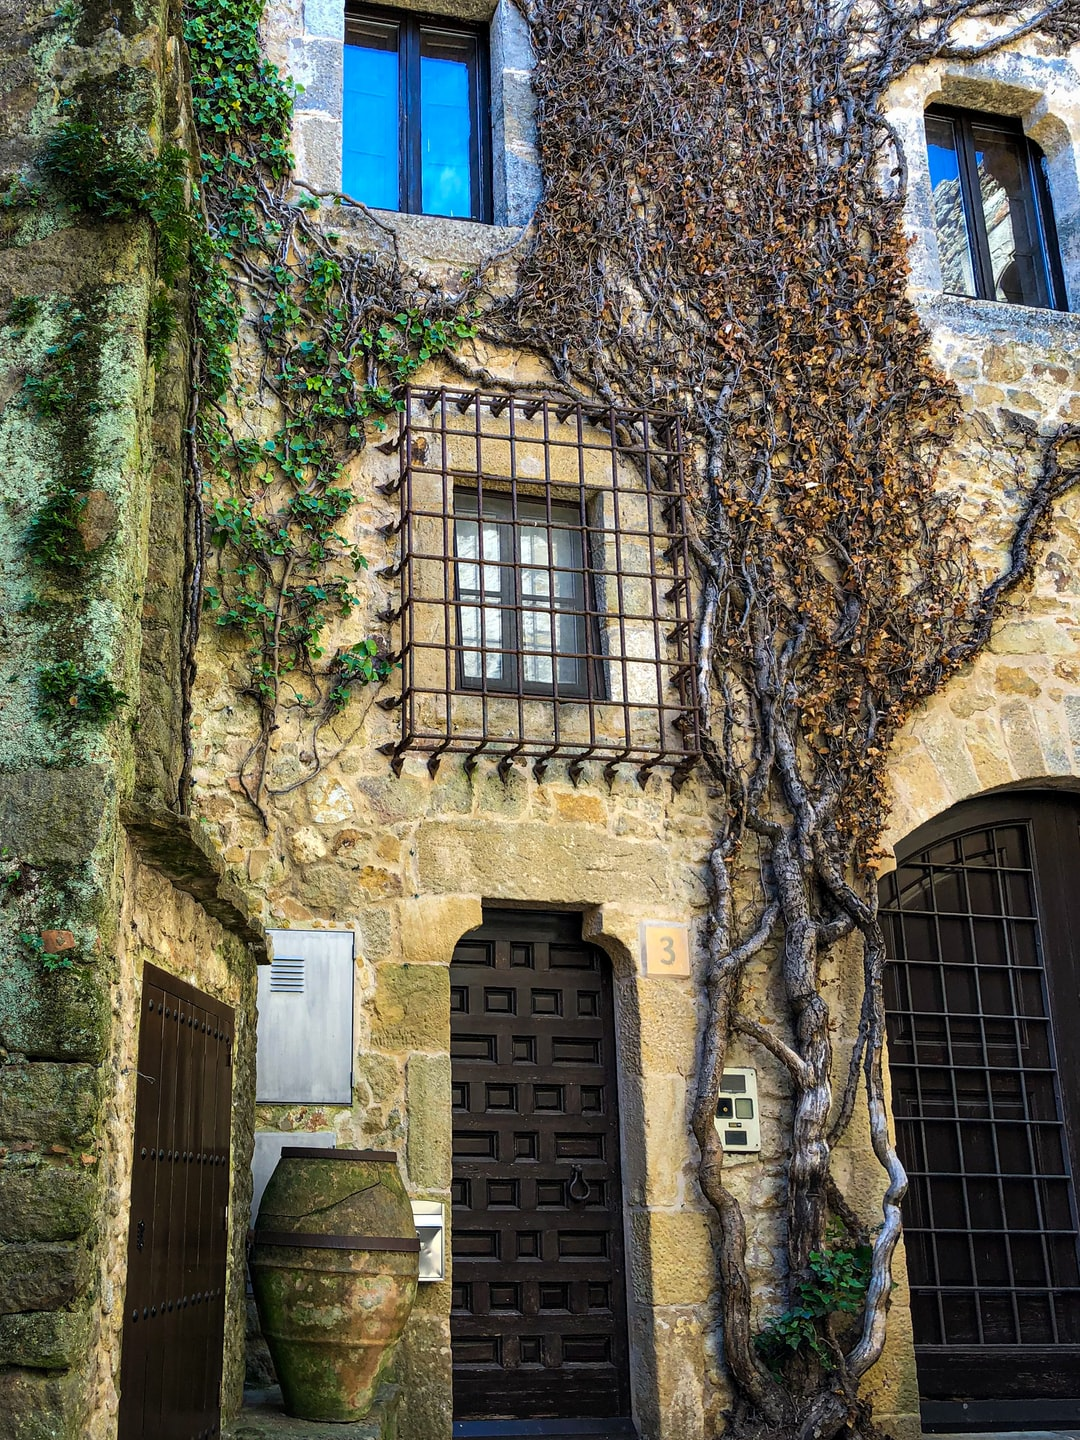 Pals is a medieval town in Catalonia, northern Spain, a few kilometres from the sea in the heart of the Bay of Emporda on the Costa Brava.